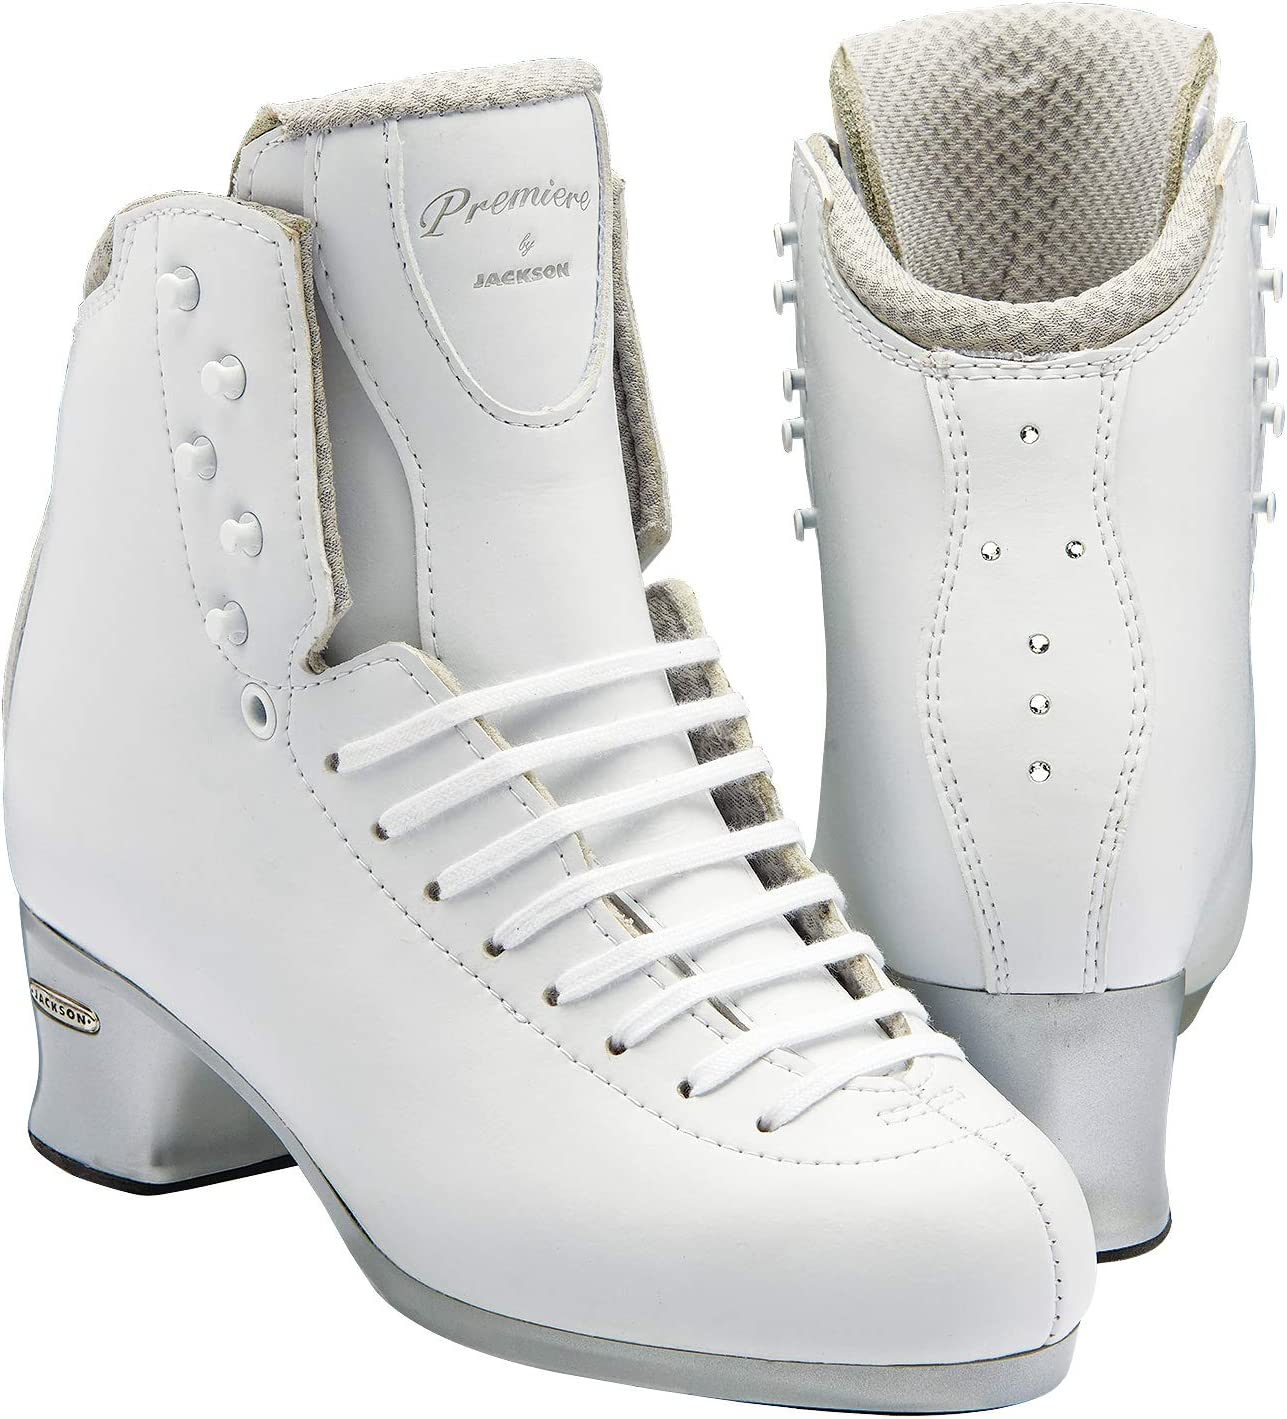 Jackson Ultima OUTLET SALE Premiere Fusion FS2800 JUS セール特別価格 Skating Boots - Figure